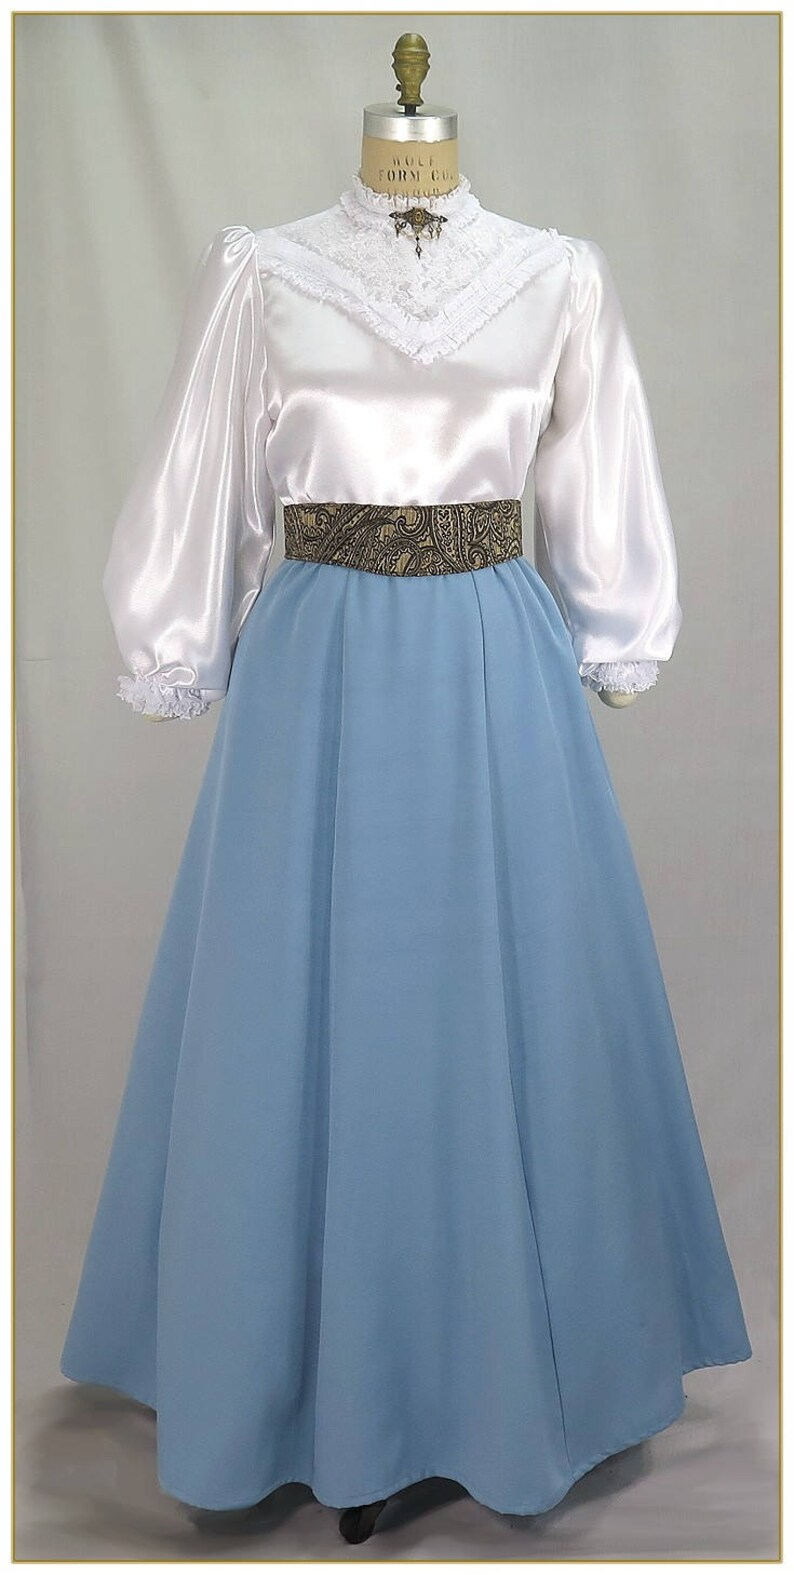 1890s-1900s Fashion, Clothing, Costumes  $65.00 AT vintagedancer.com